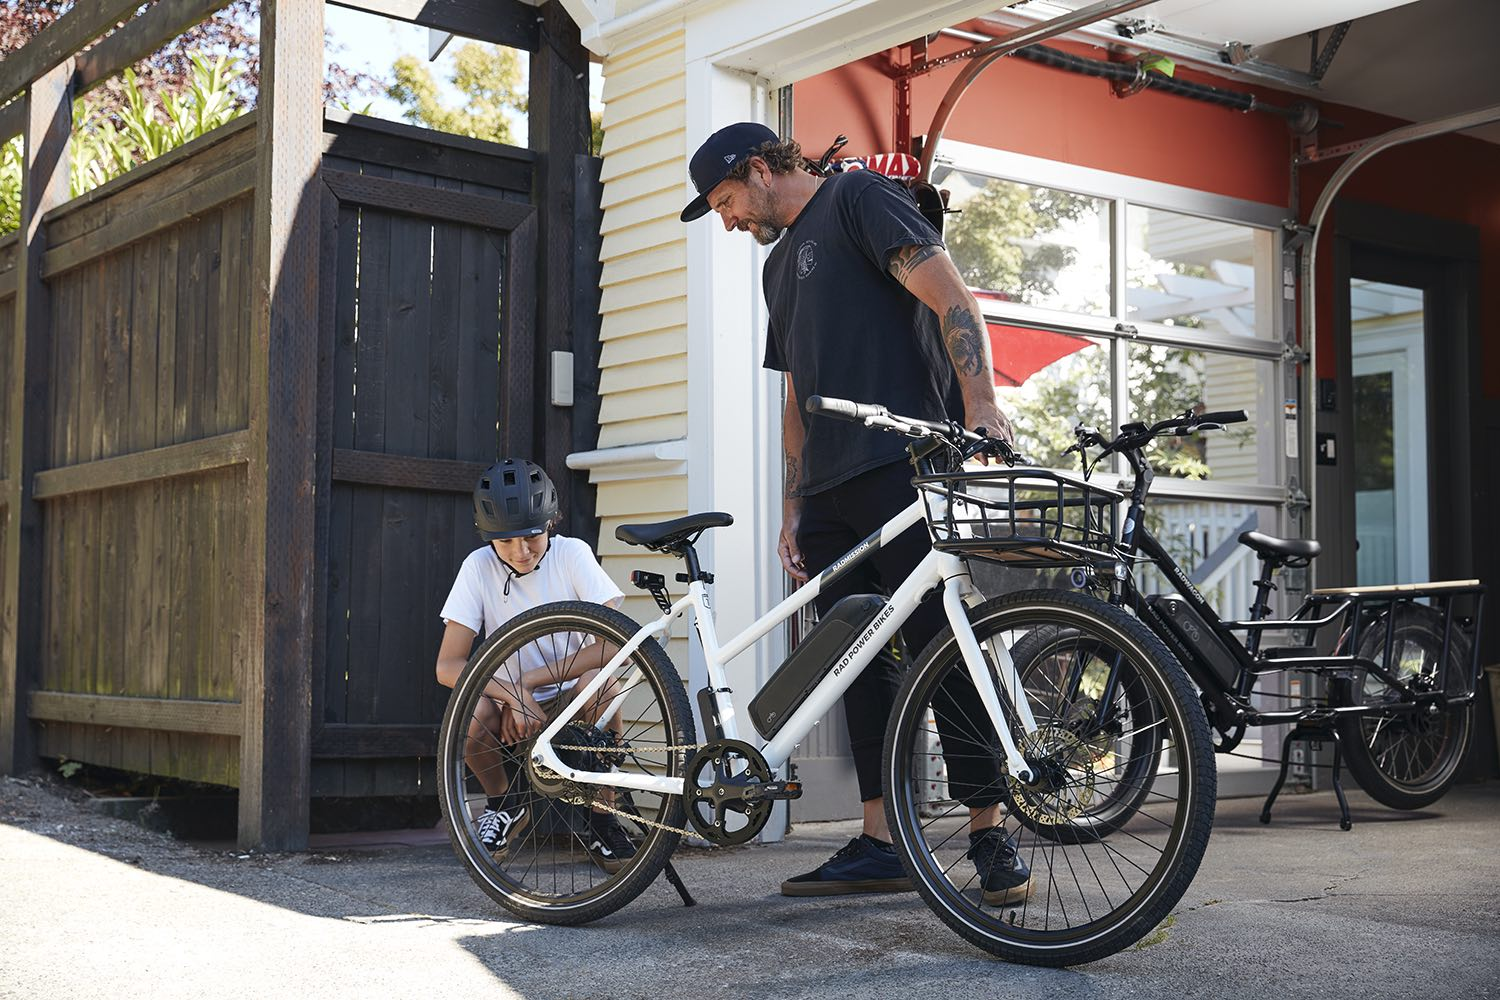 A father and son check out the RadWagon 4 from their driveway.